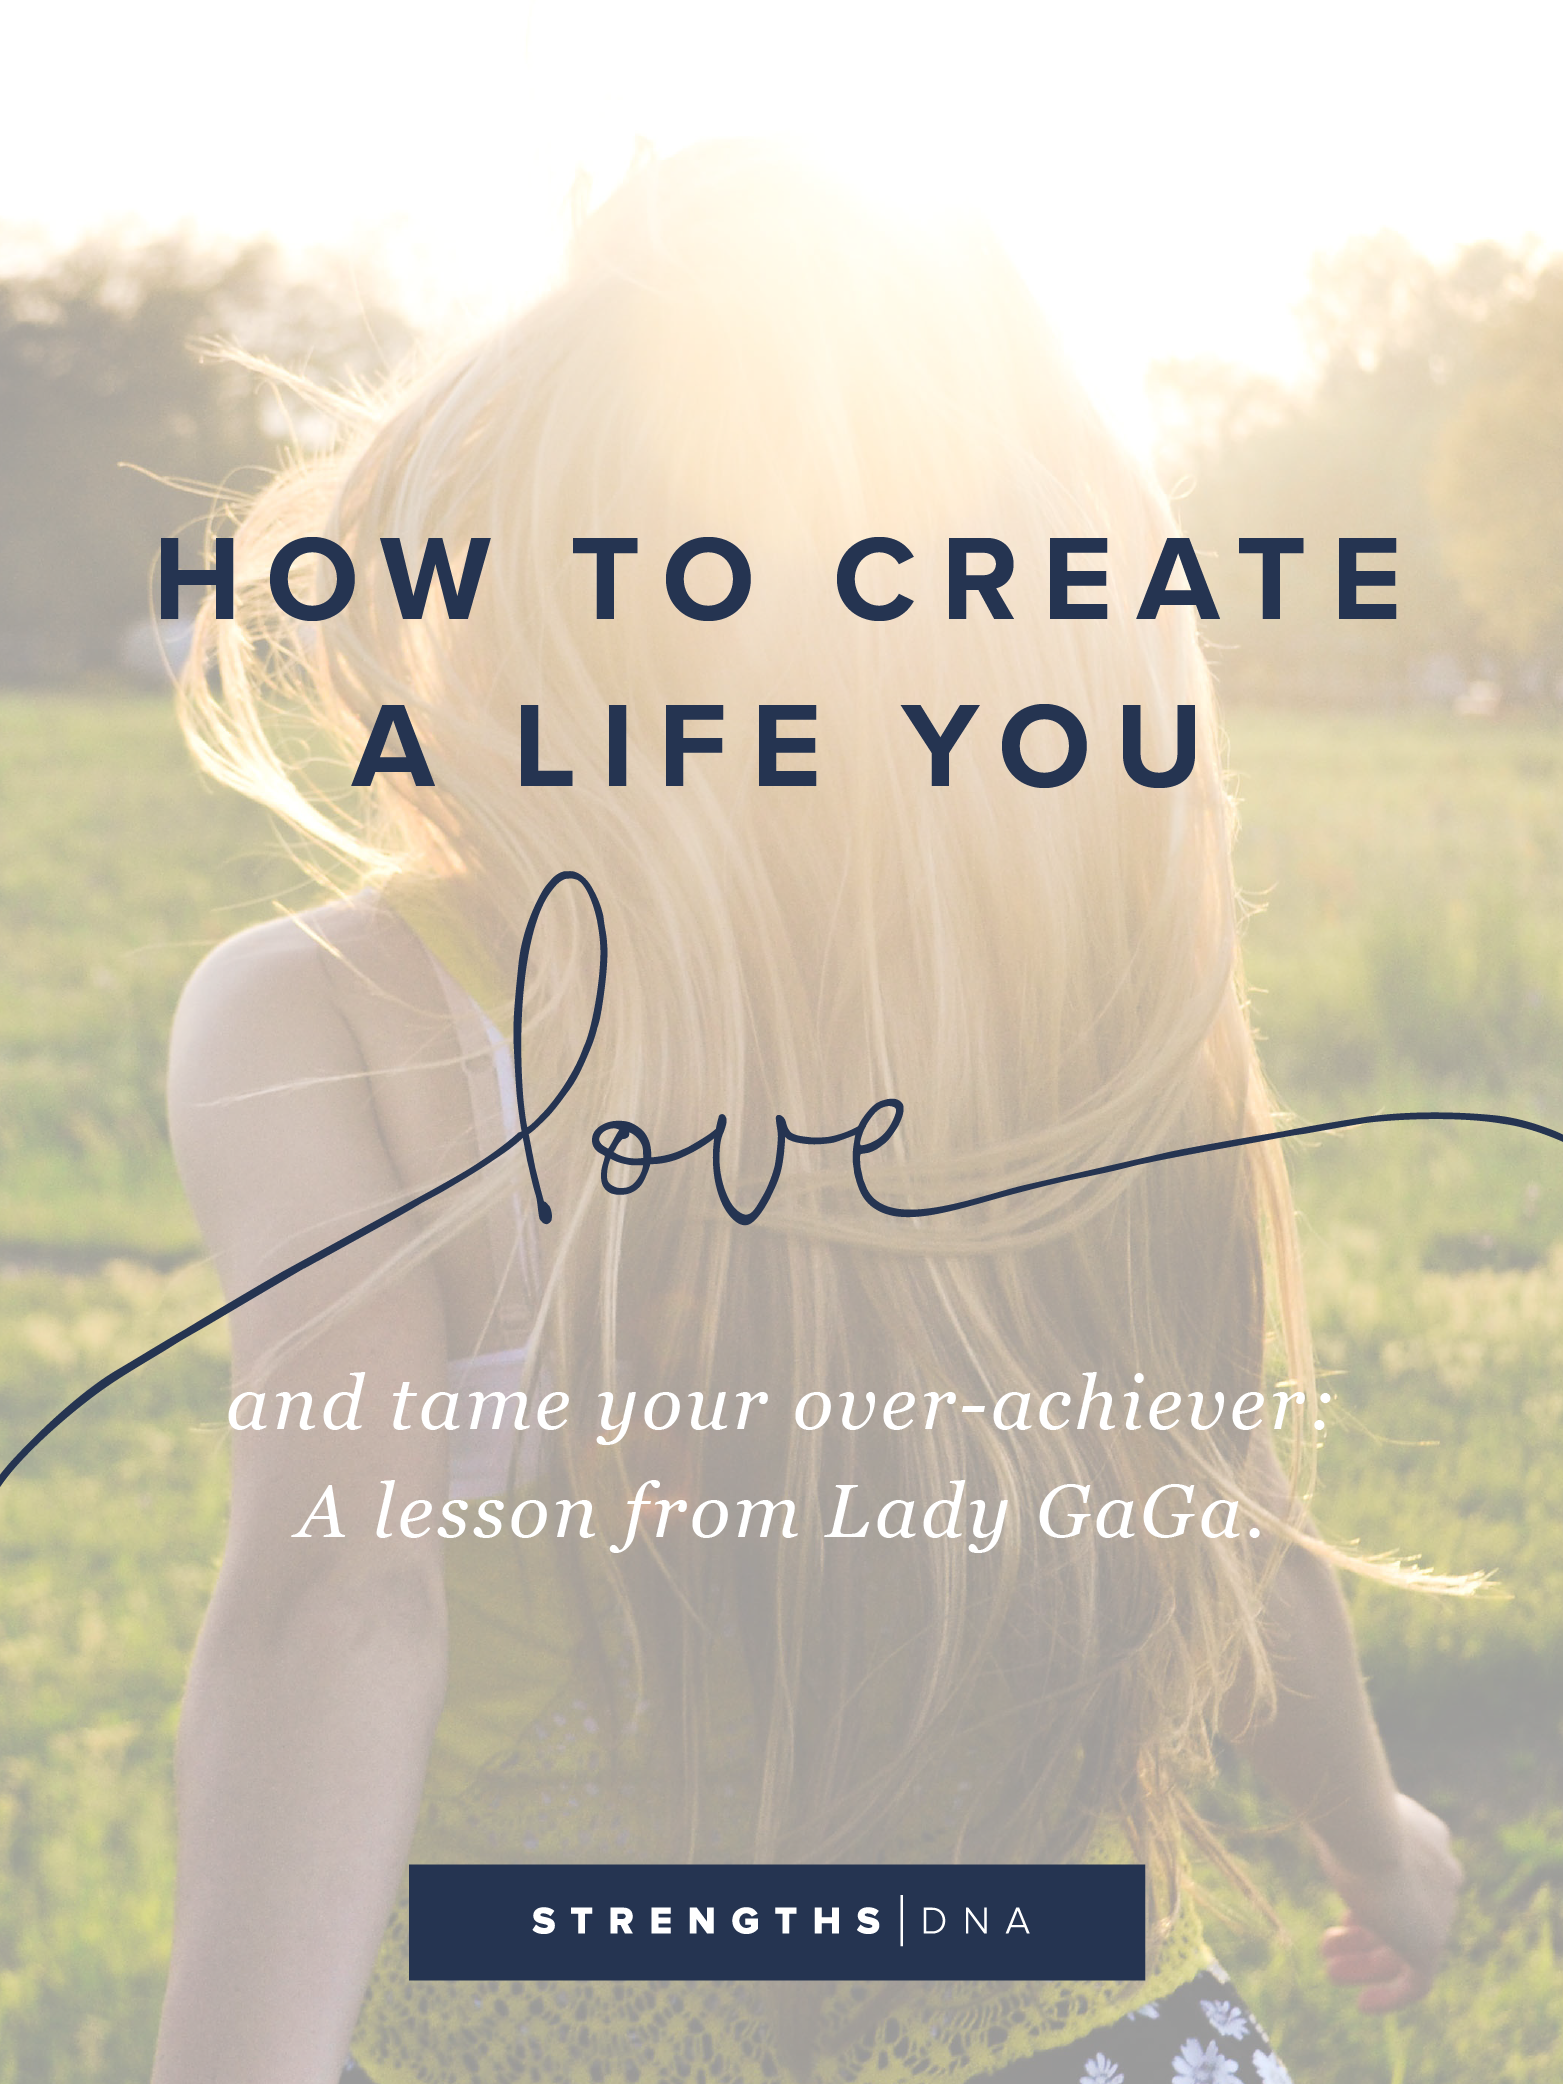 How to create a life you love blog-01.png